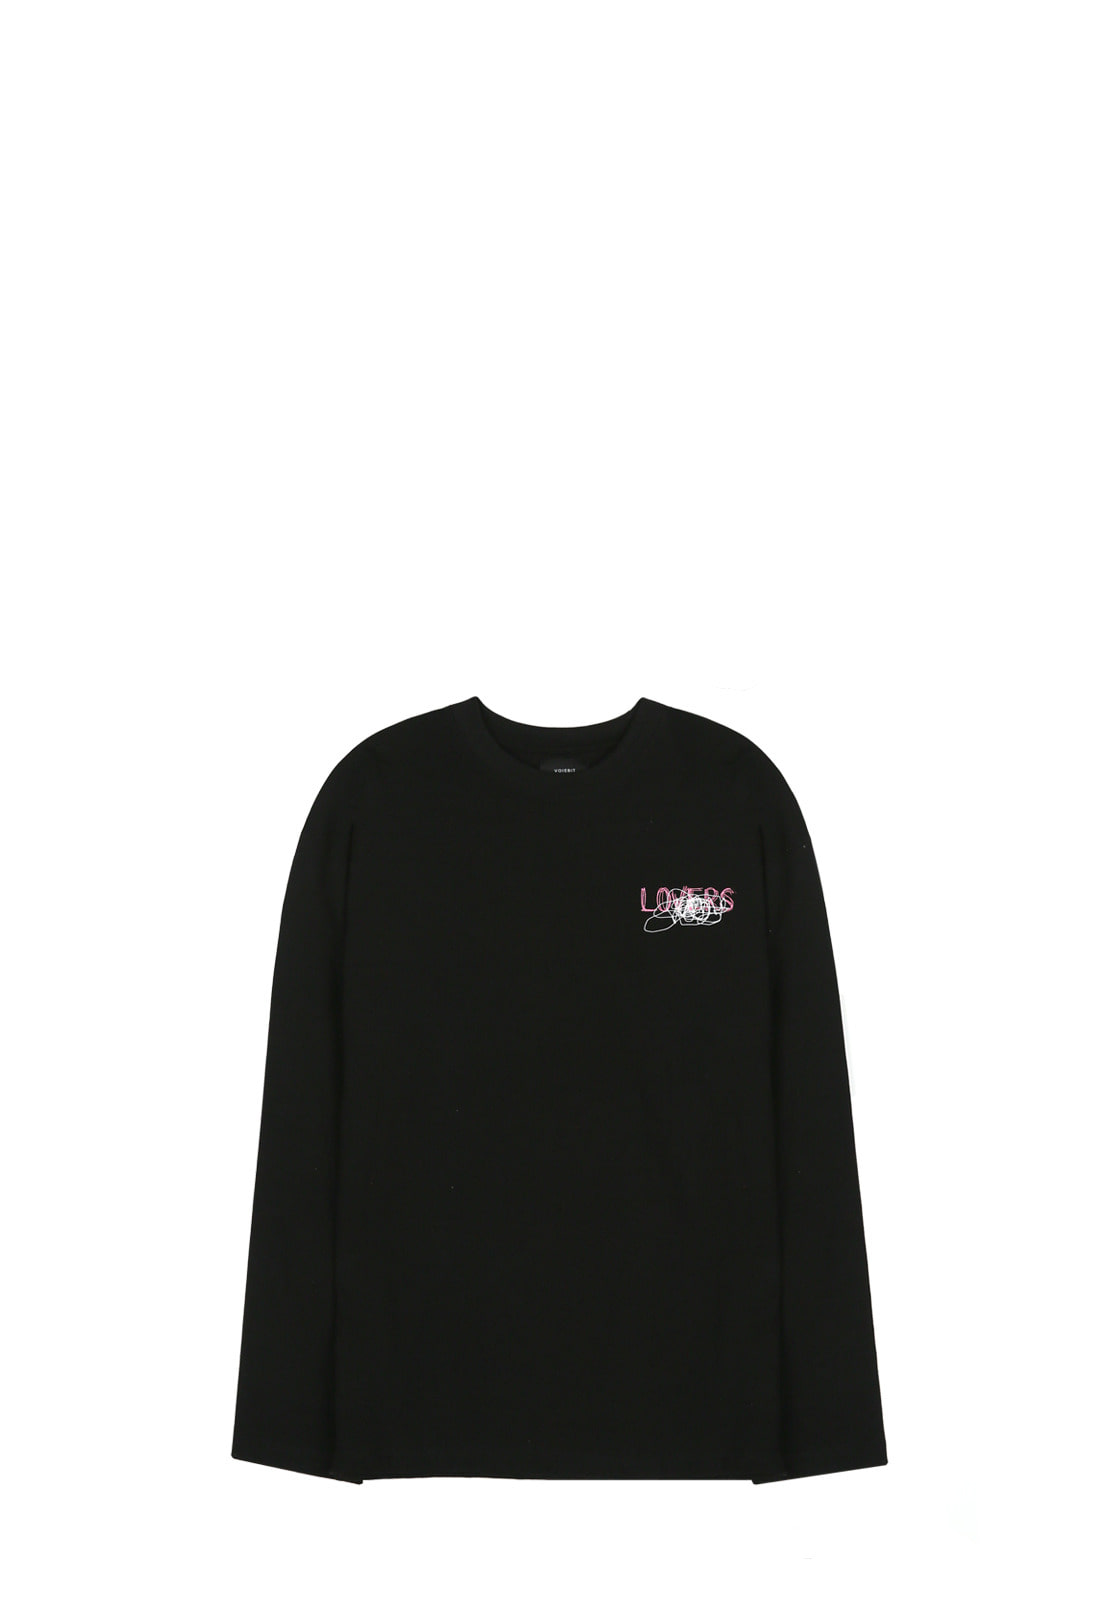 V341 GRAFFITI LONG-SLEEVE  BLACK